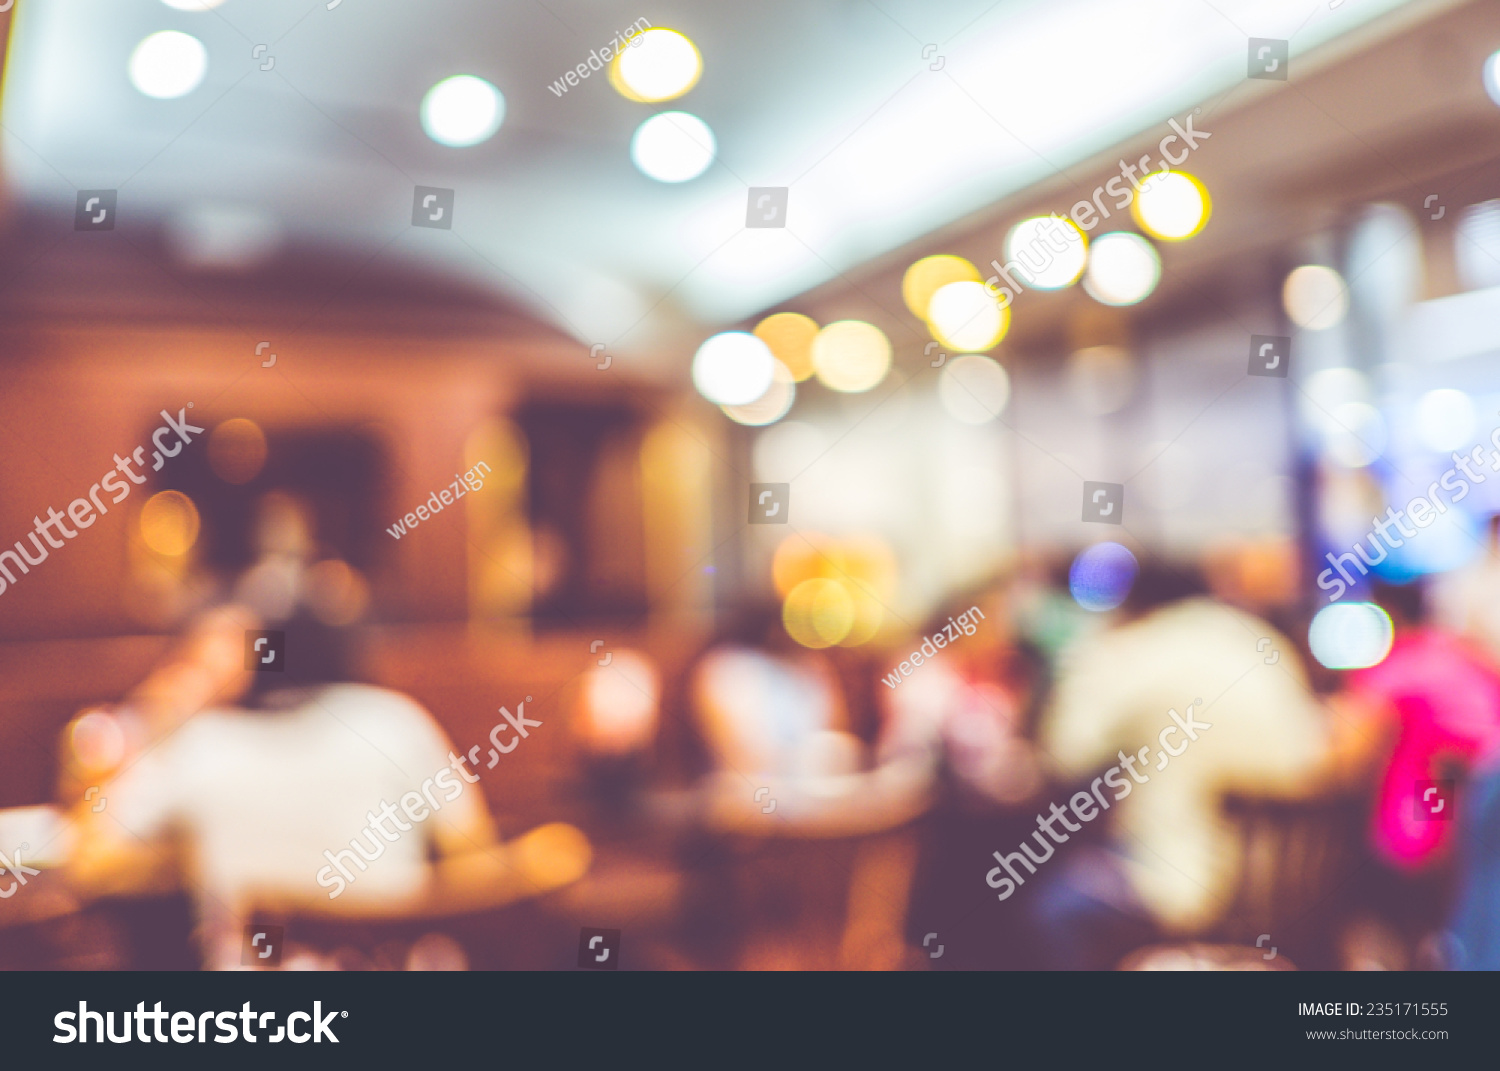 Restaurant Background With People Blurred Background Customer Restaurant Blur Background Stock Photo